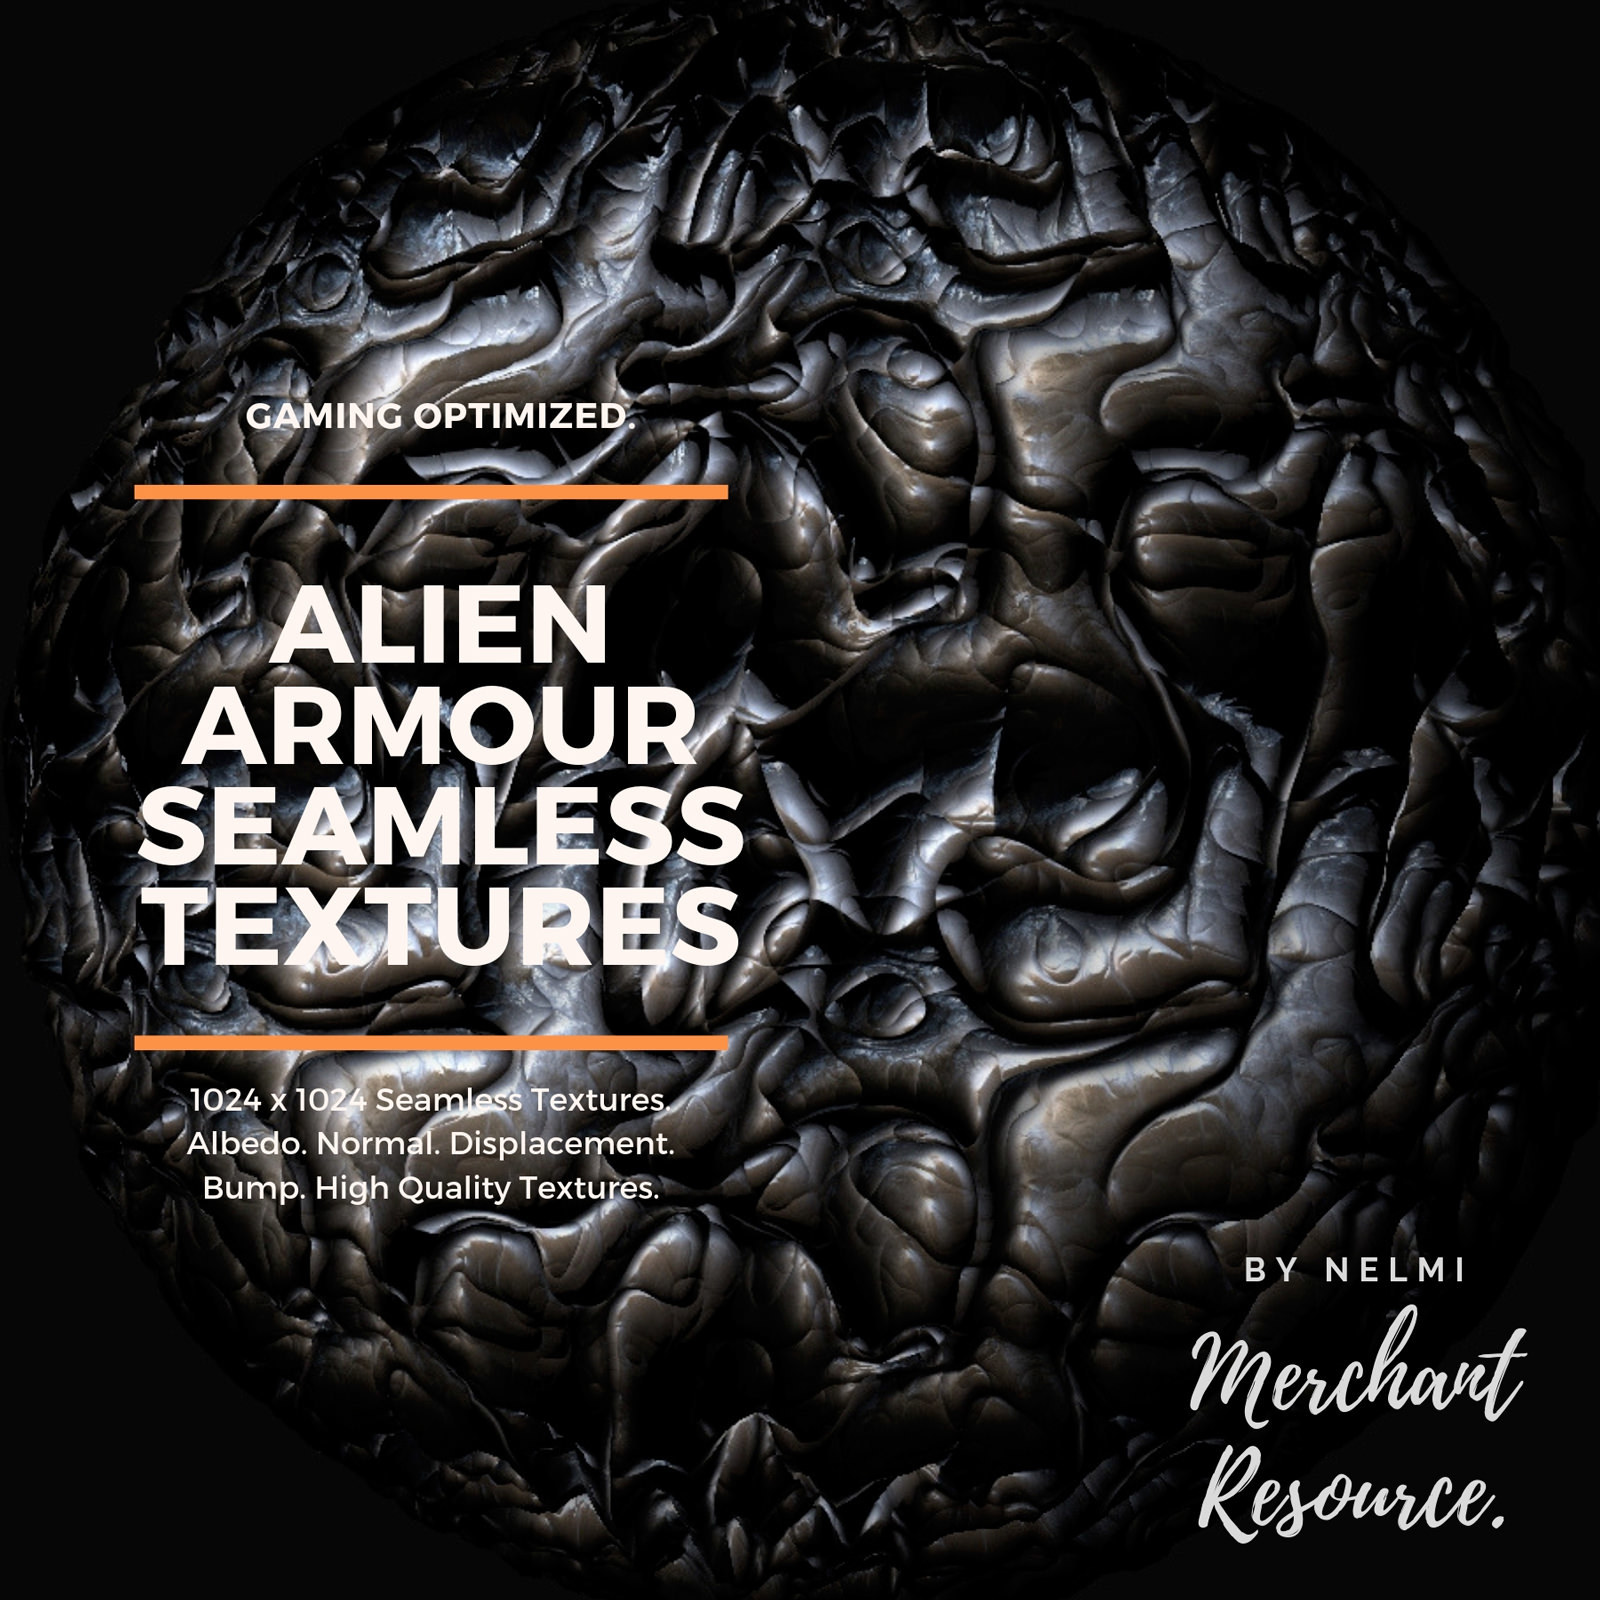 Alien Armour Seamless Textures - Merchant Resource by nelmi